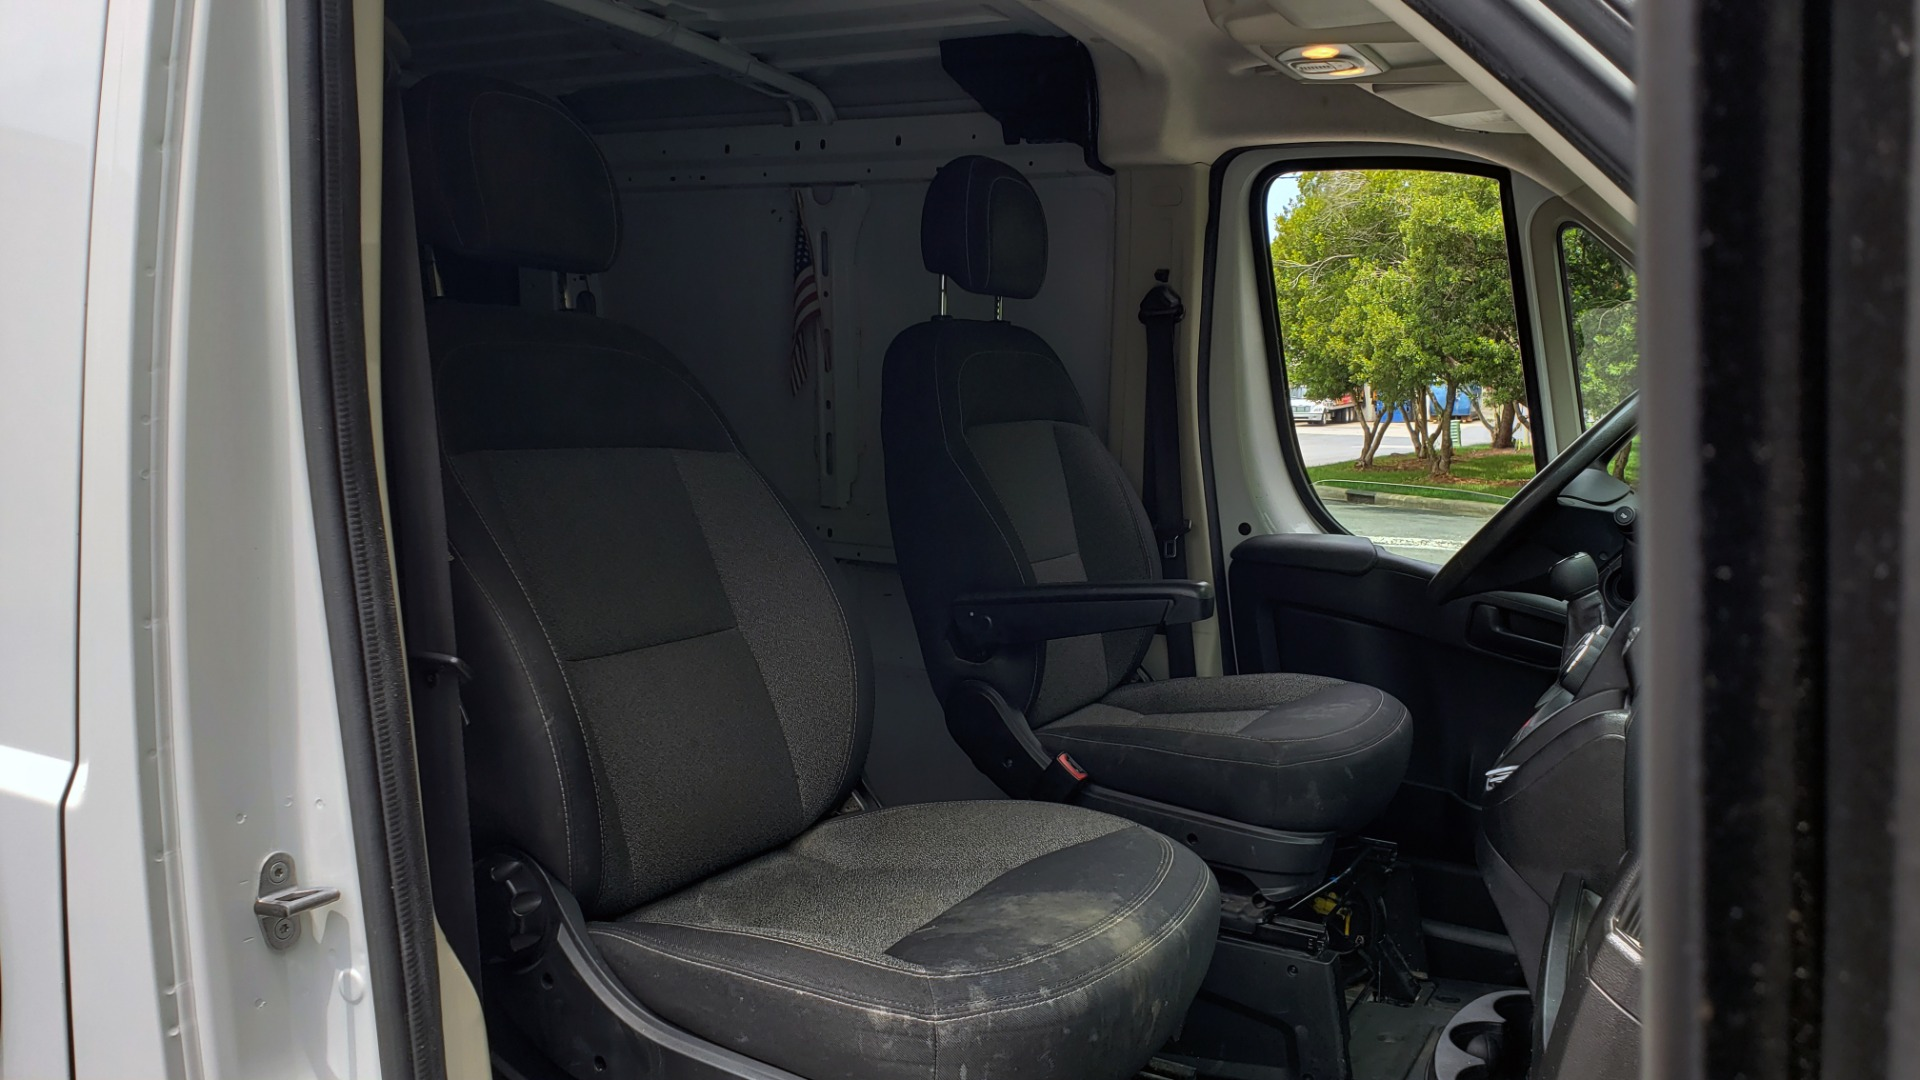 Used 2016 Ram PROMASTER CARGO VAN 136 WB / 3.6L V6 / AUTO / ROOF-RACK / REARVIEW / SEATS 5 for sale Sold at Formula Imports in Charlotte NC 28227 55